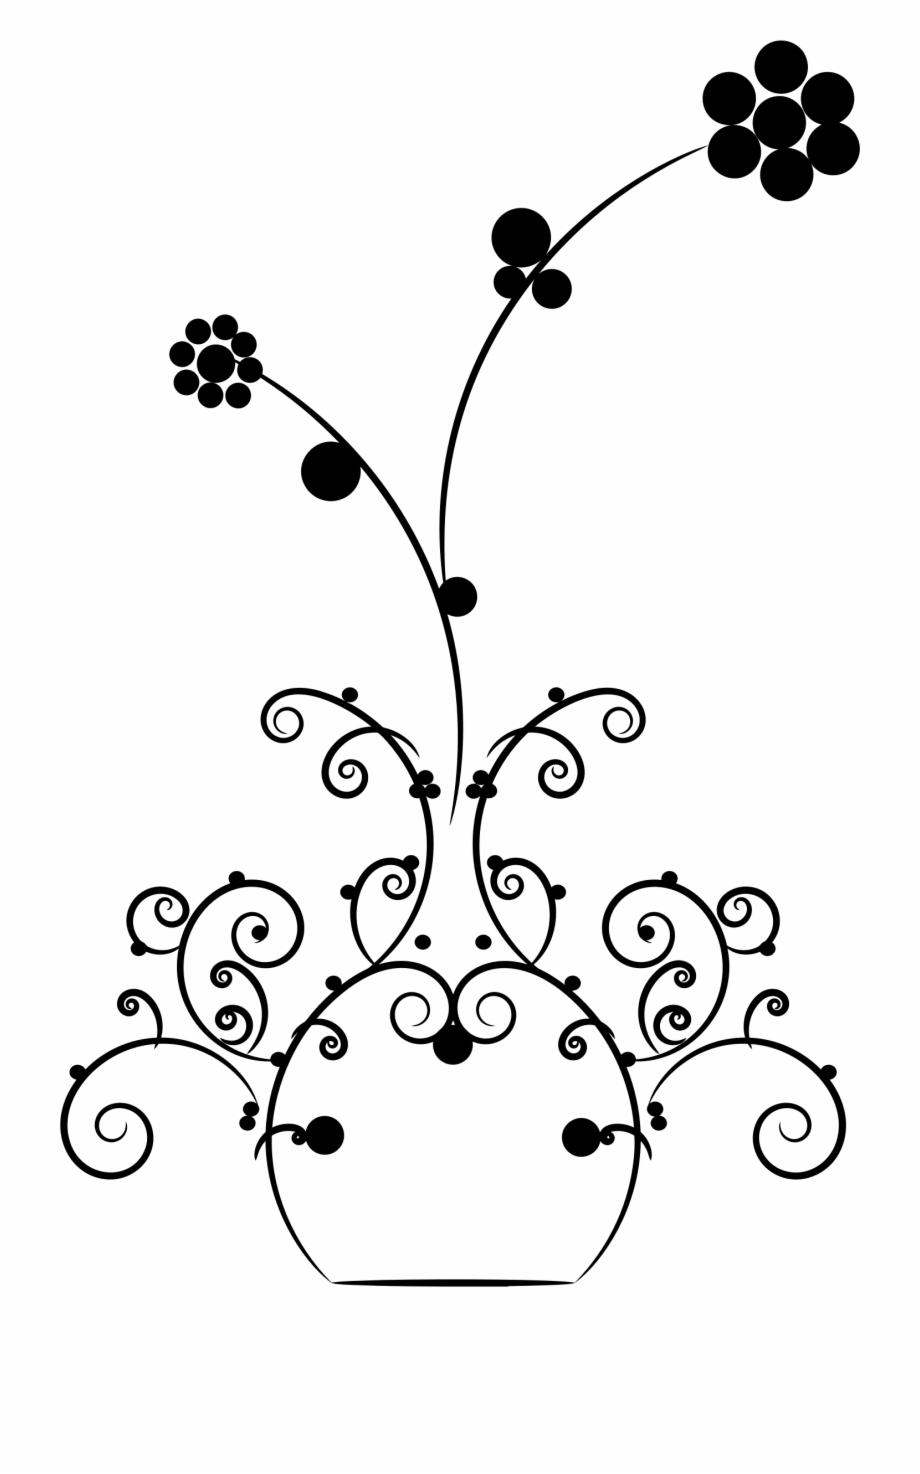 This Free Icons Png Design Of Abstract Flourish Vase.